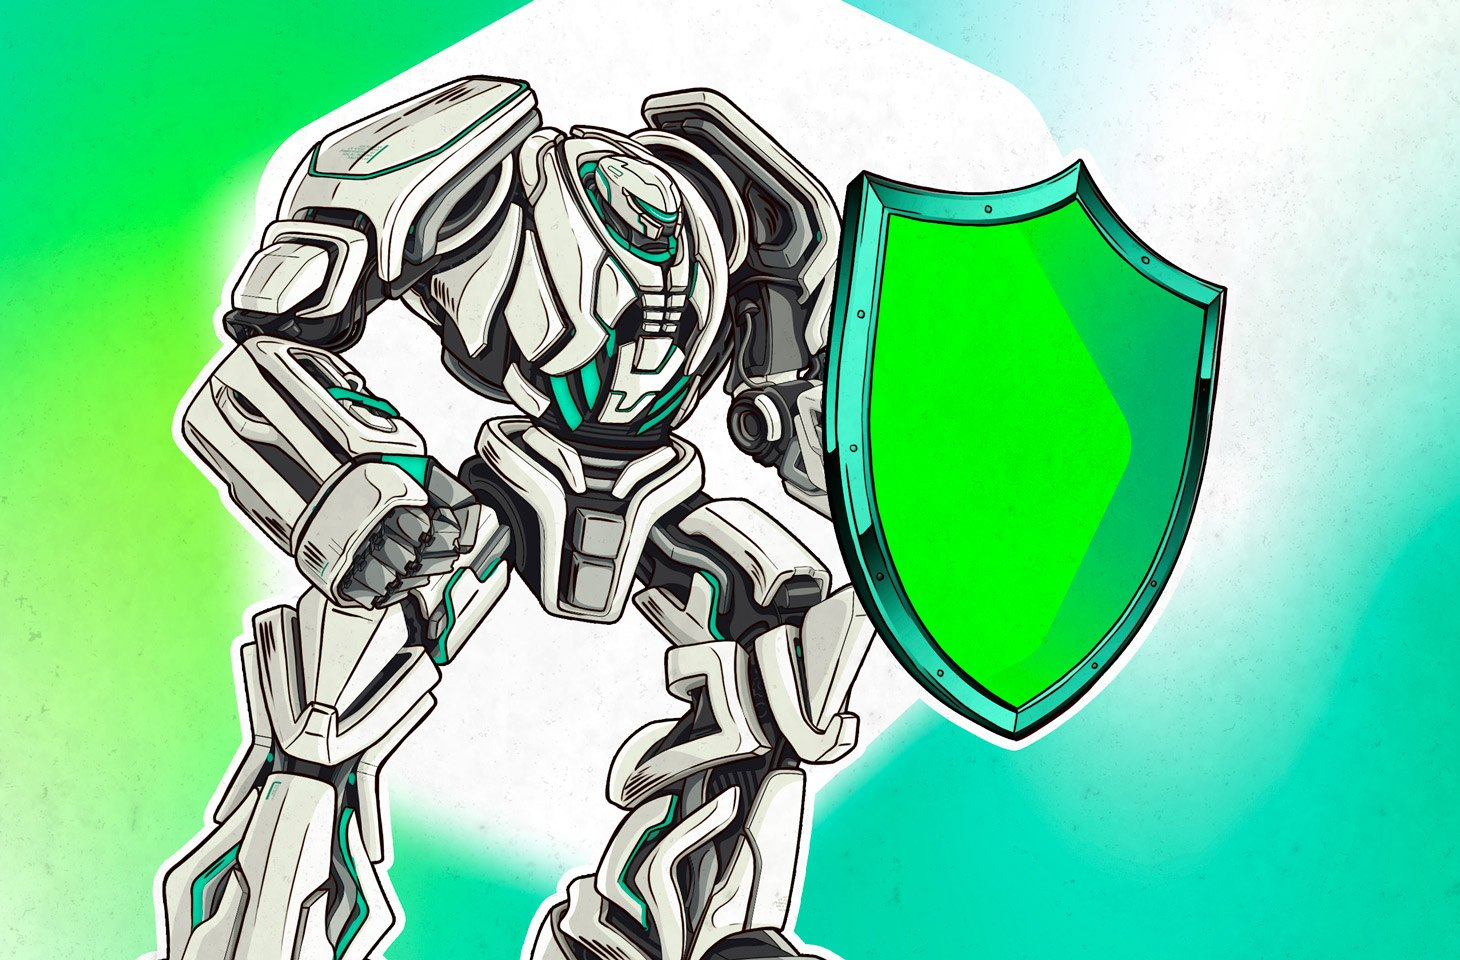 Best Free Antivirus For Mac 2020 What's new in Kaspersky 2020 security solutions | Kaspersky official